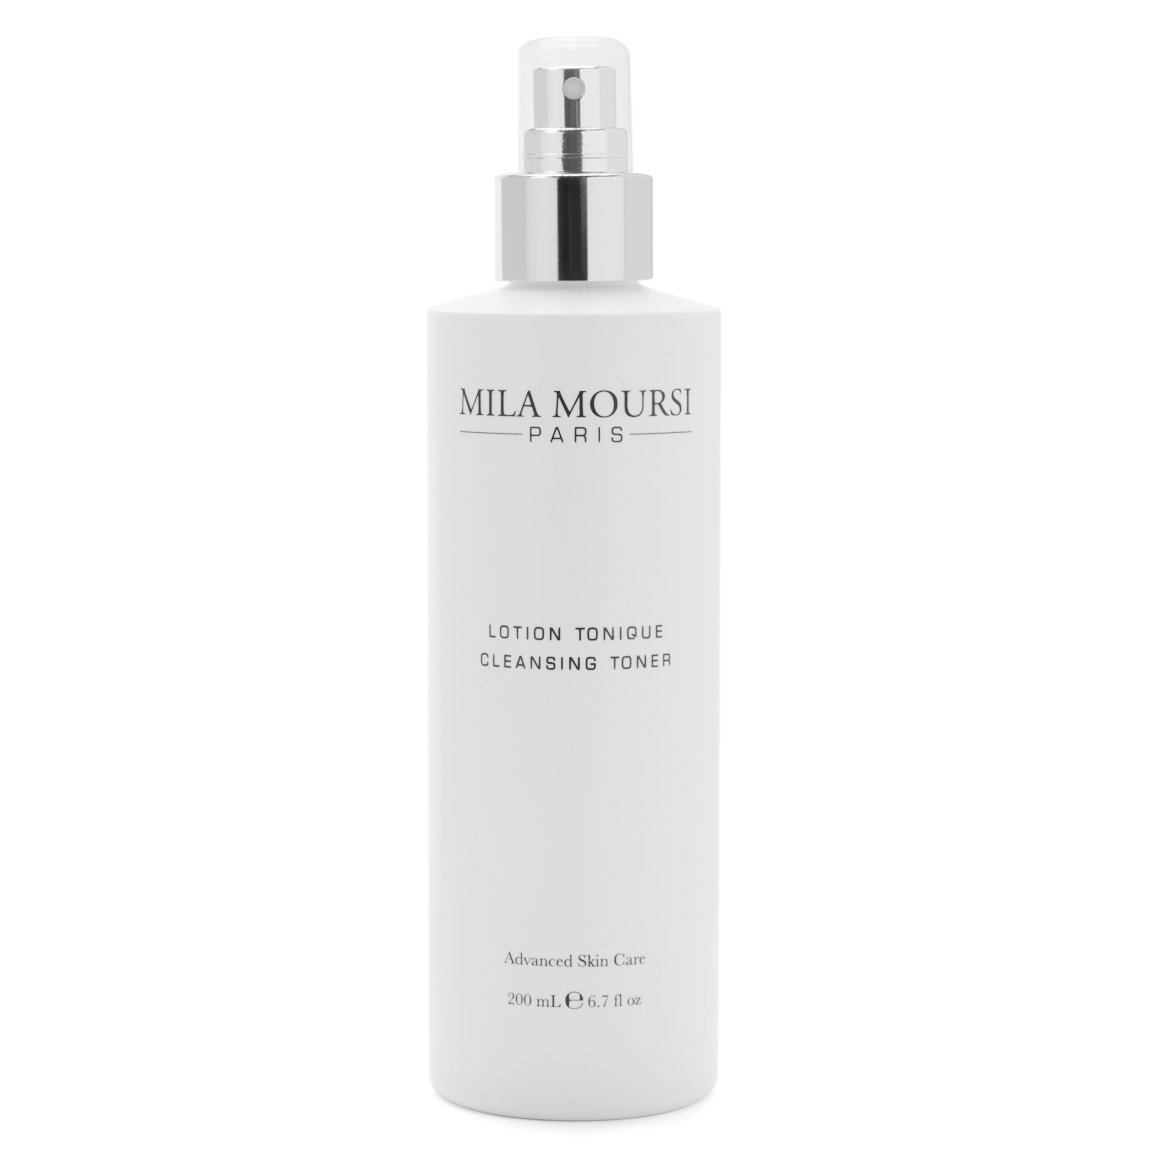 Mila Moursi Cleansing Toner 200 ml product swatch.